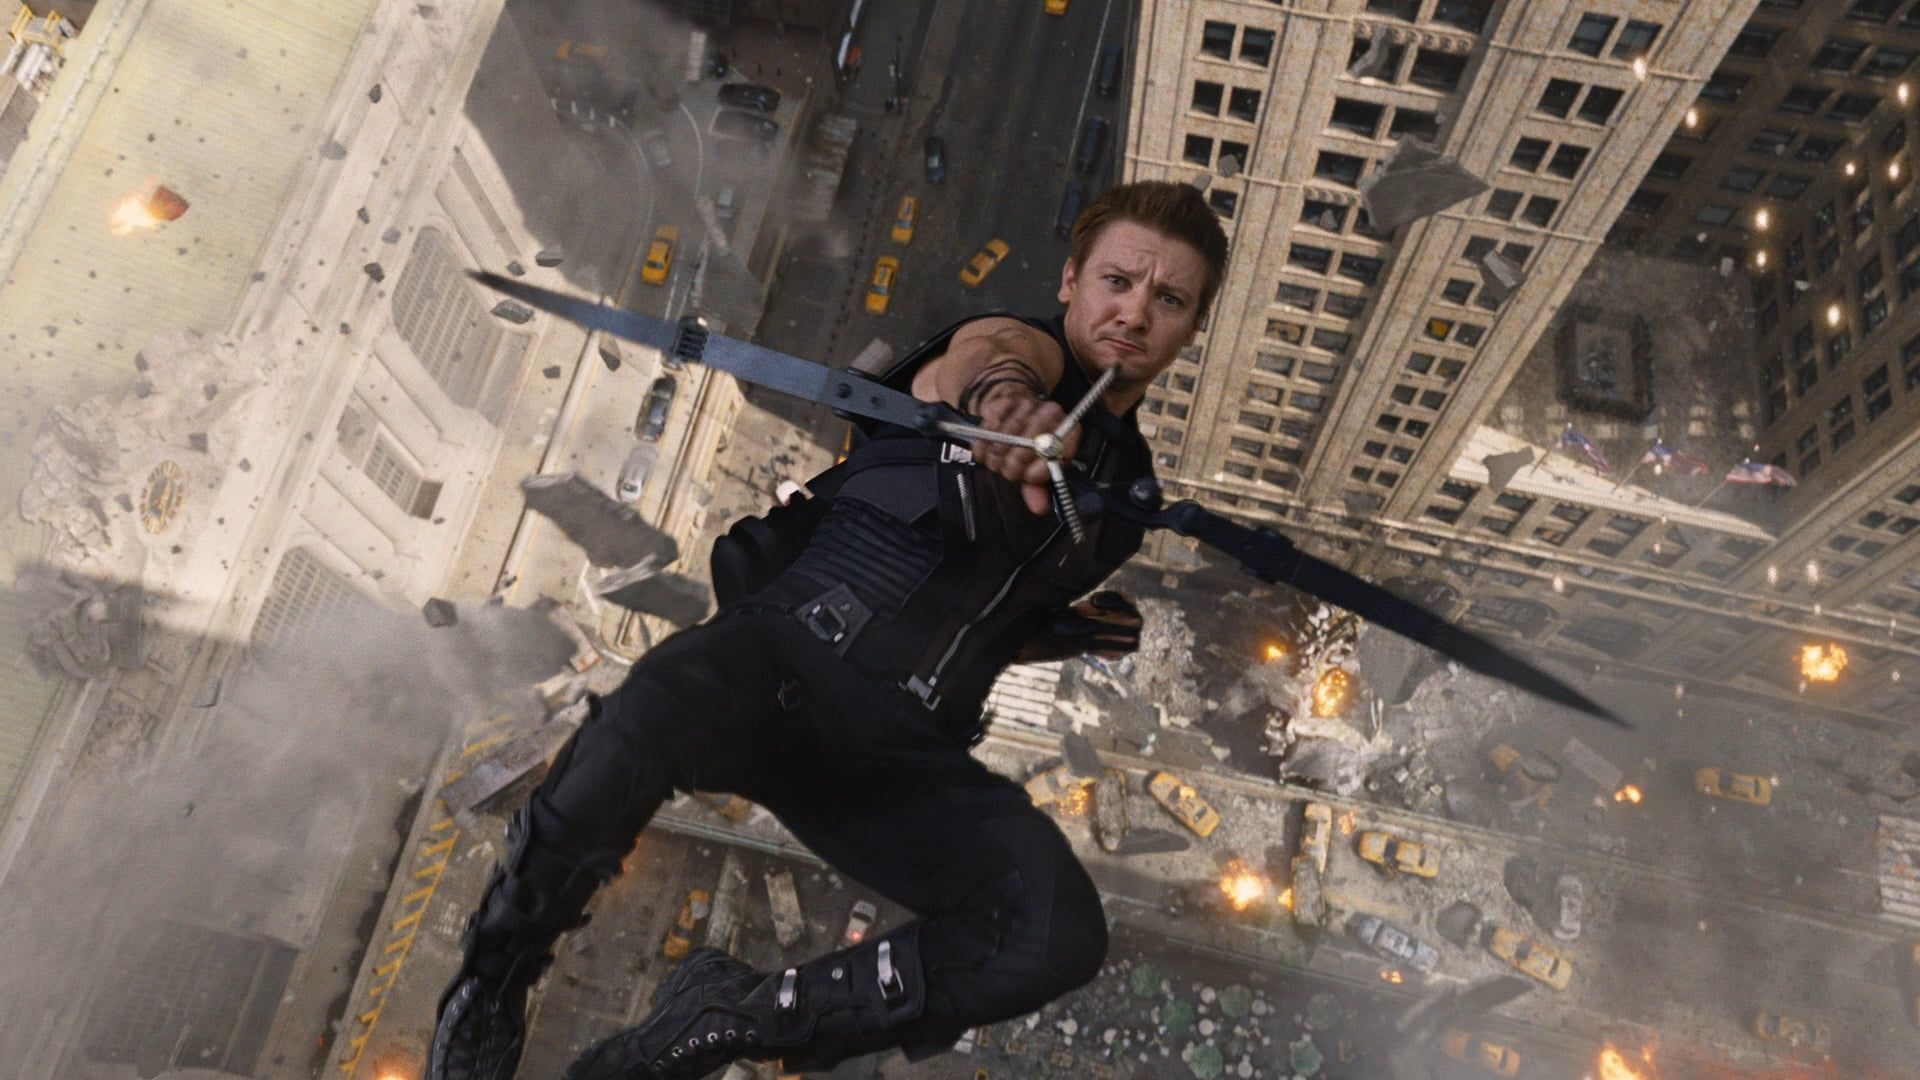 New images from Marvel's Hawkeye series shared